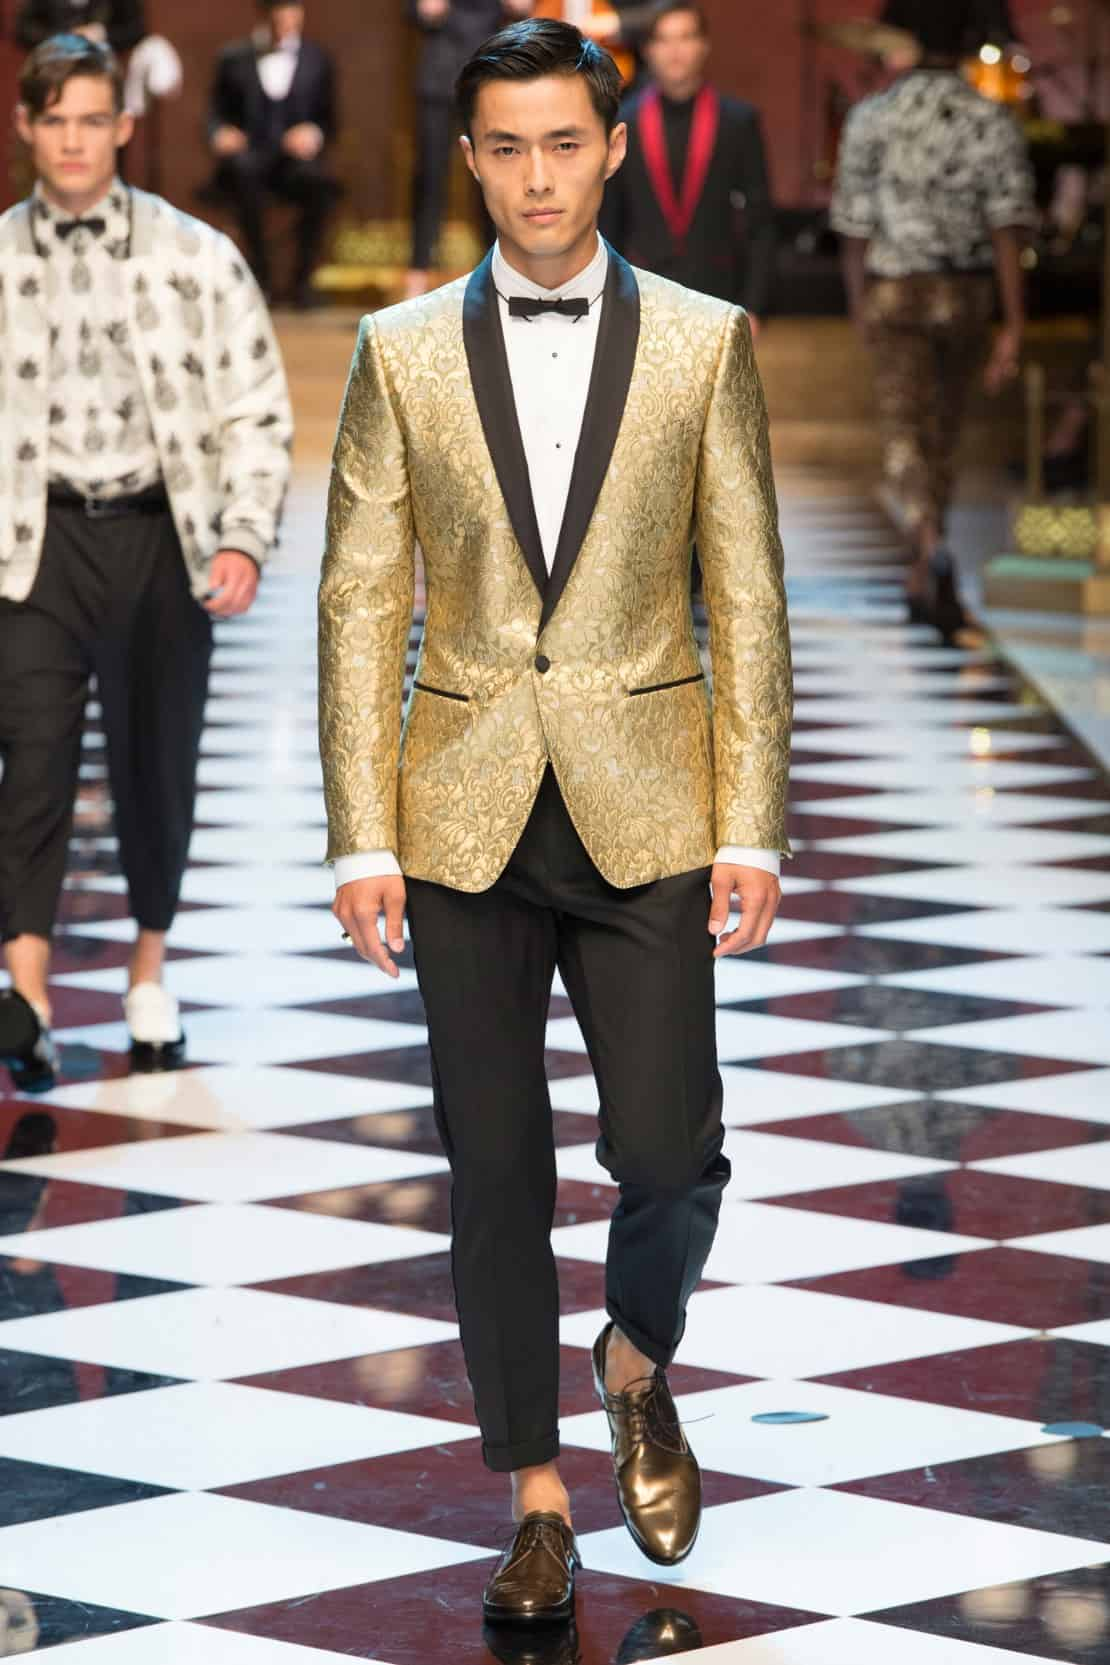 Dolce and Gabbana Menswear Spring Summer 2017 foto 13